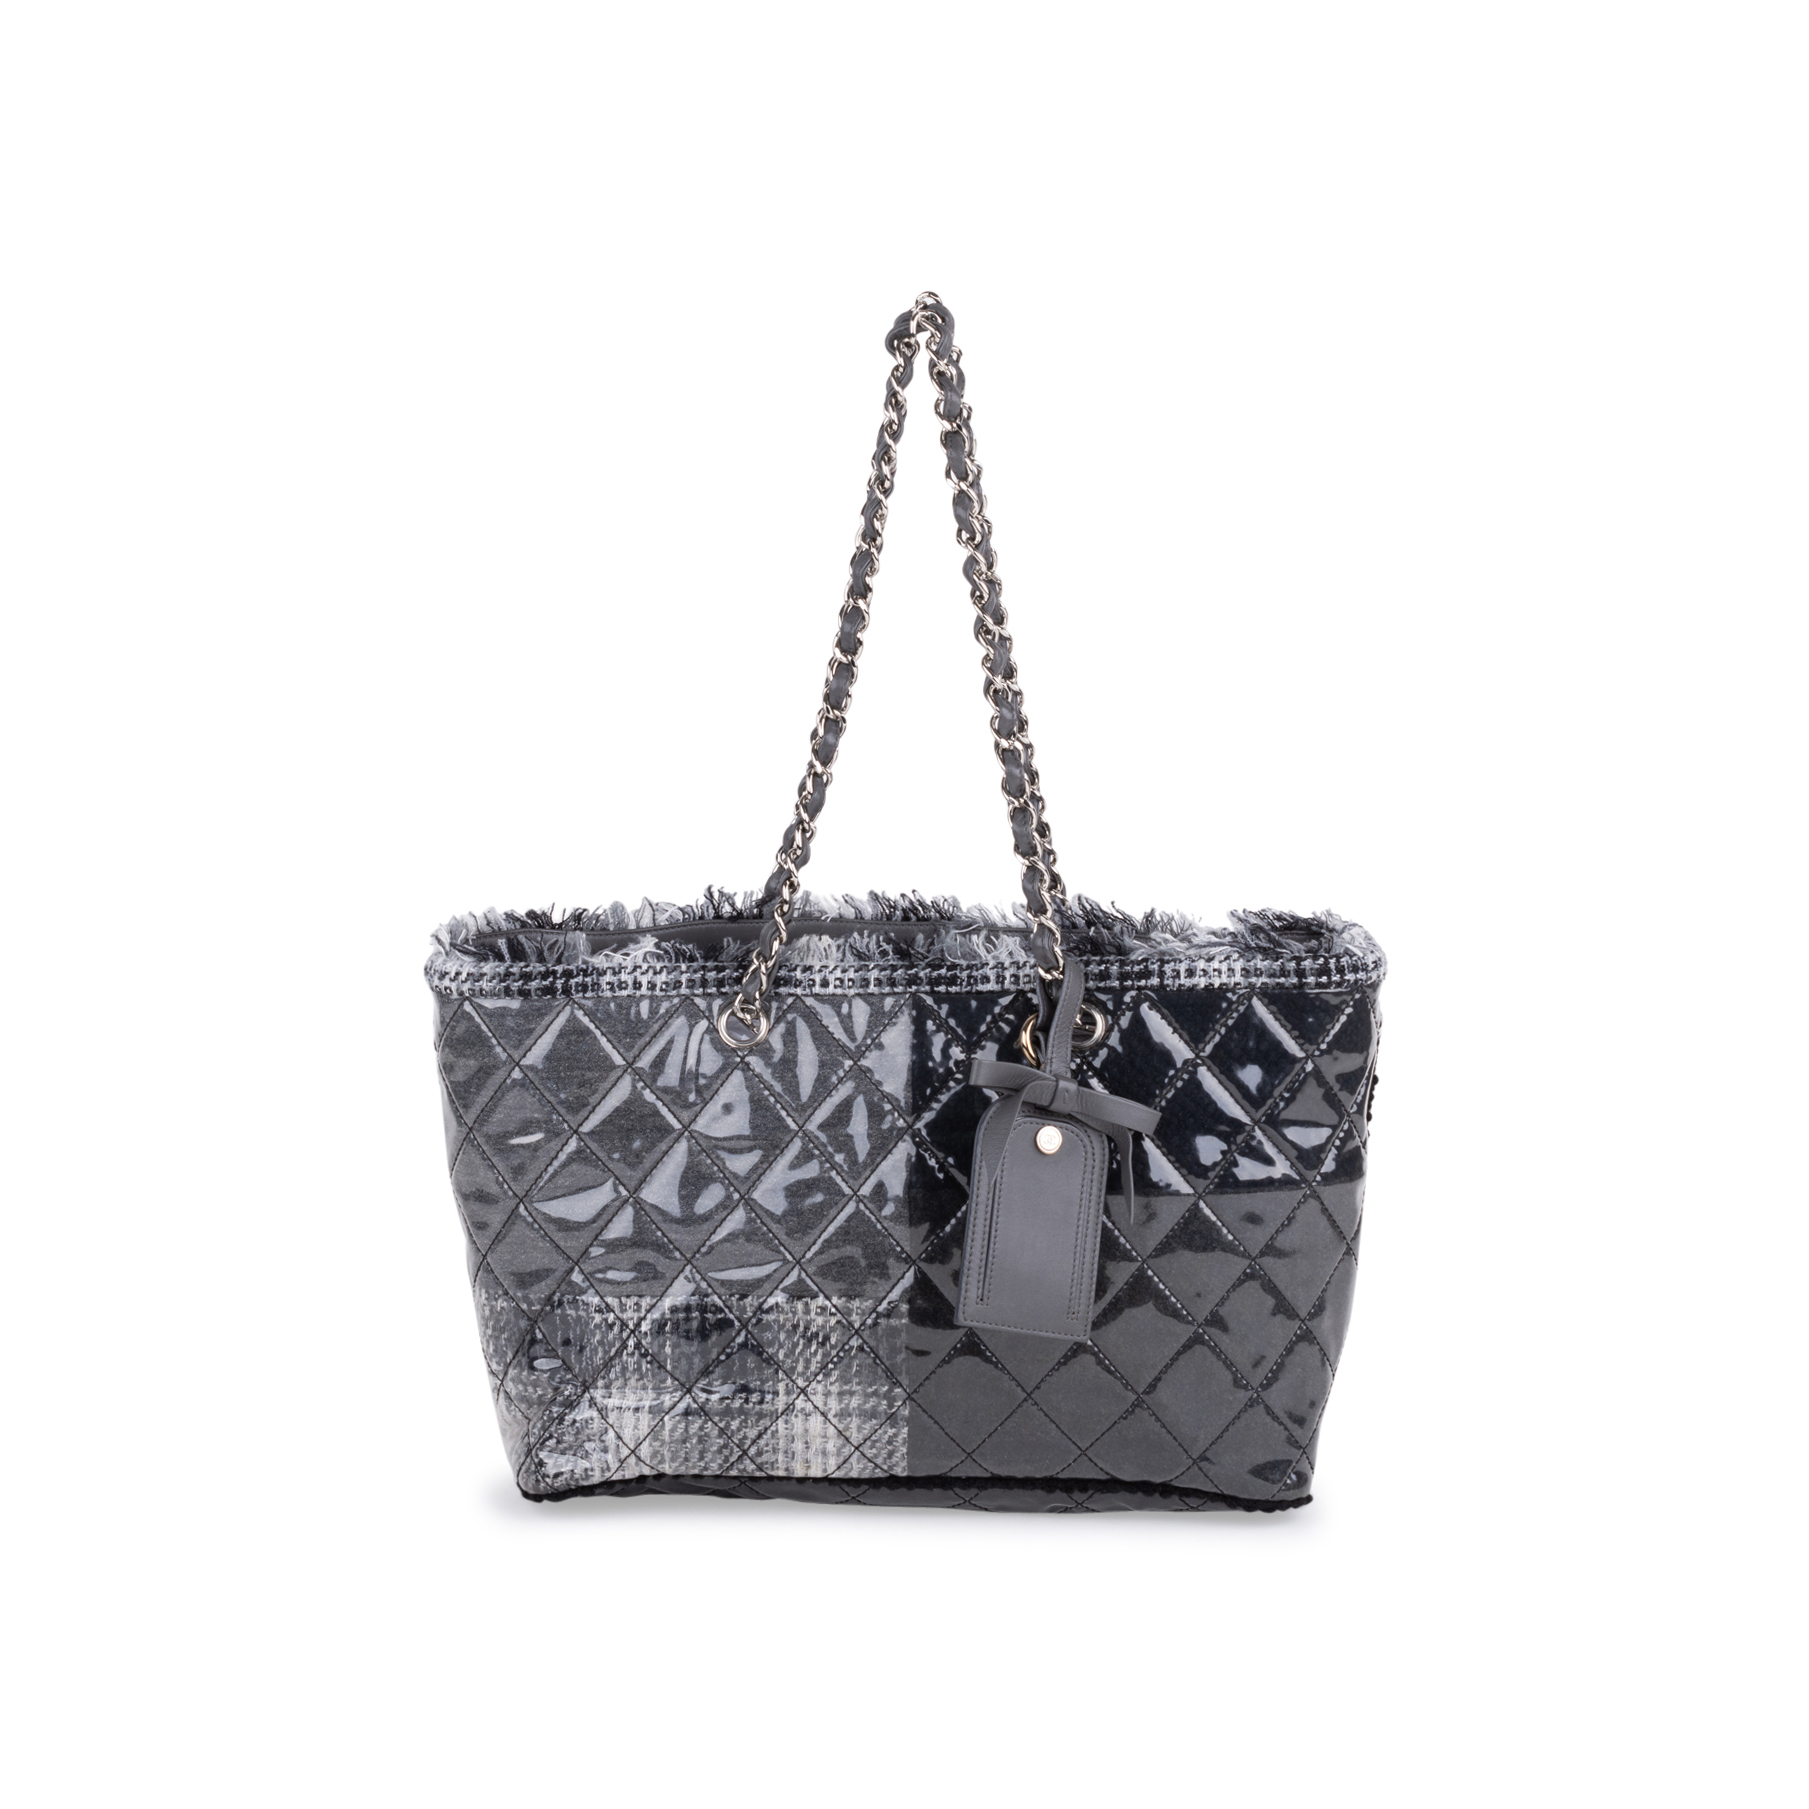 2fe92bb746f8bc Authentic Second Hand Chanel Vinyl Funny Tweed Tote Bag (PSS-600-00018) |  THE FIFTH COLLECTION